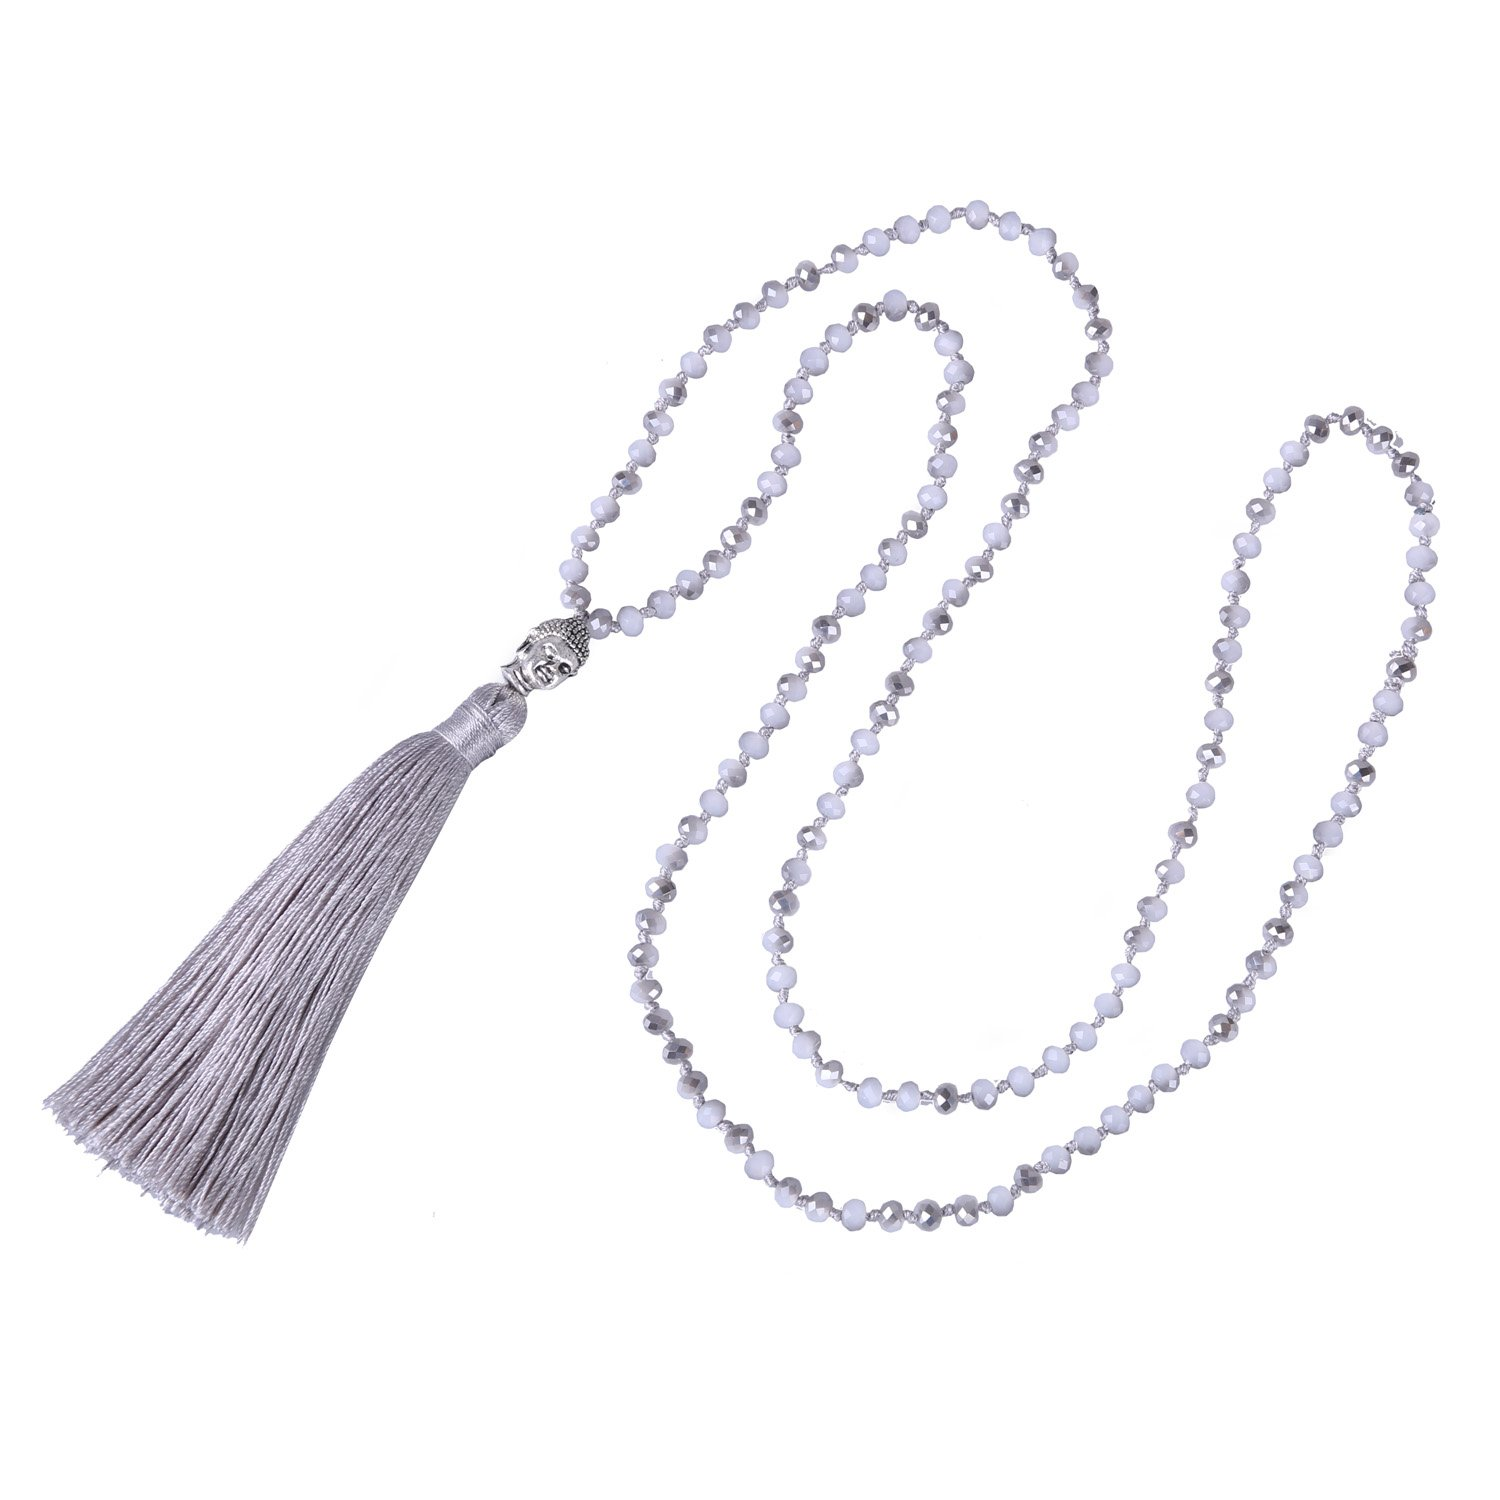 KELITCH Handmade AB Crystal String Beads Long Necklace with Buddha Head Tassel Pendant, Gray